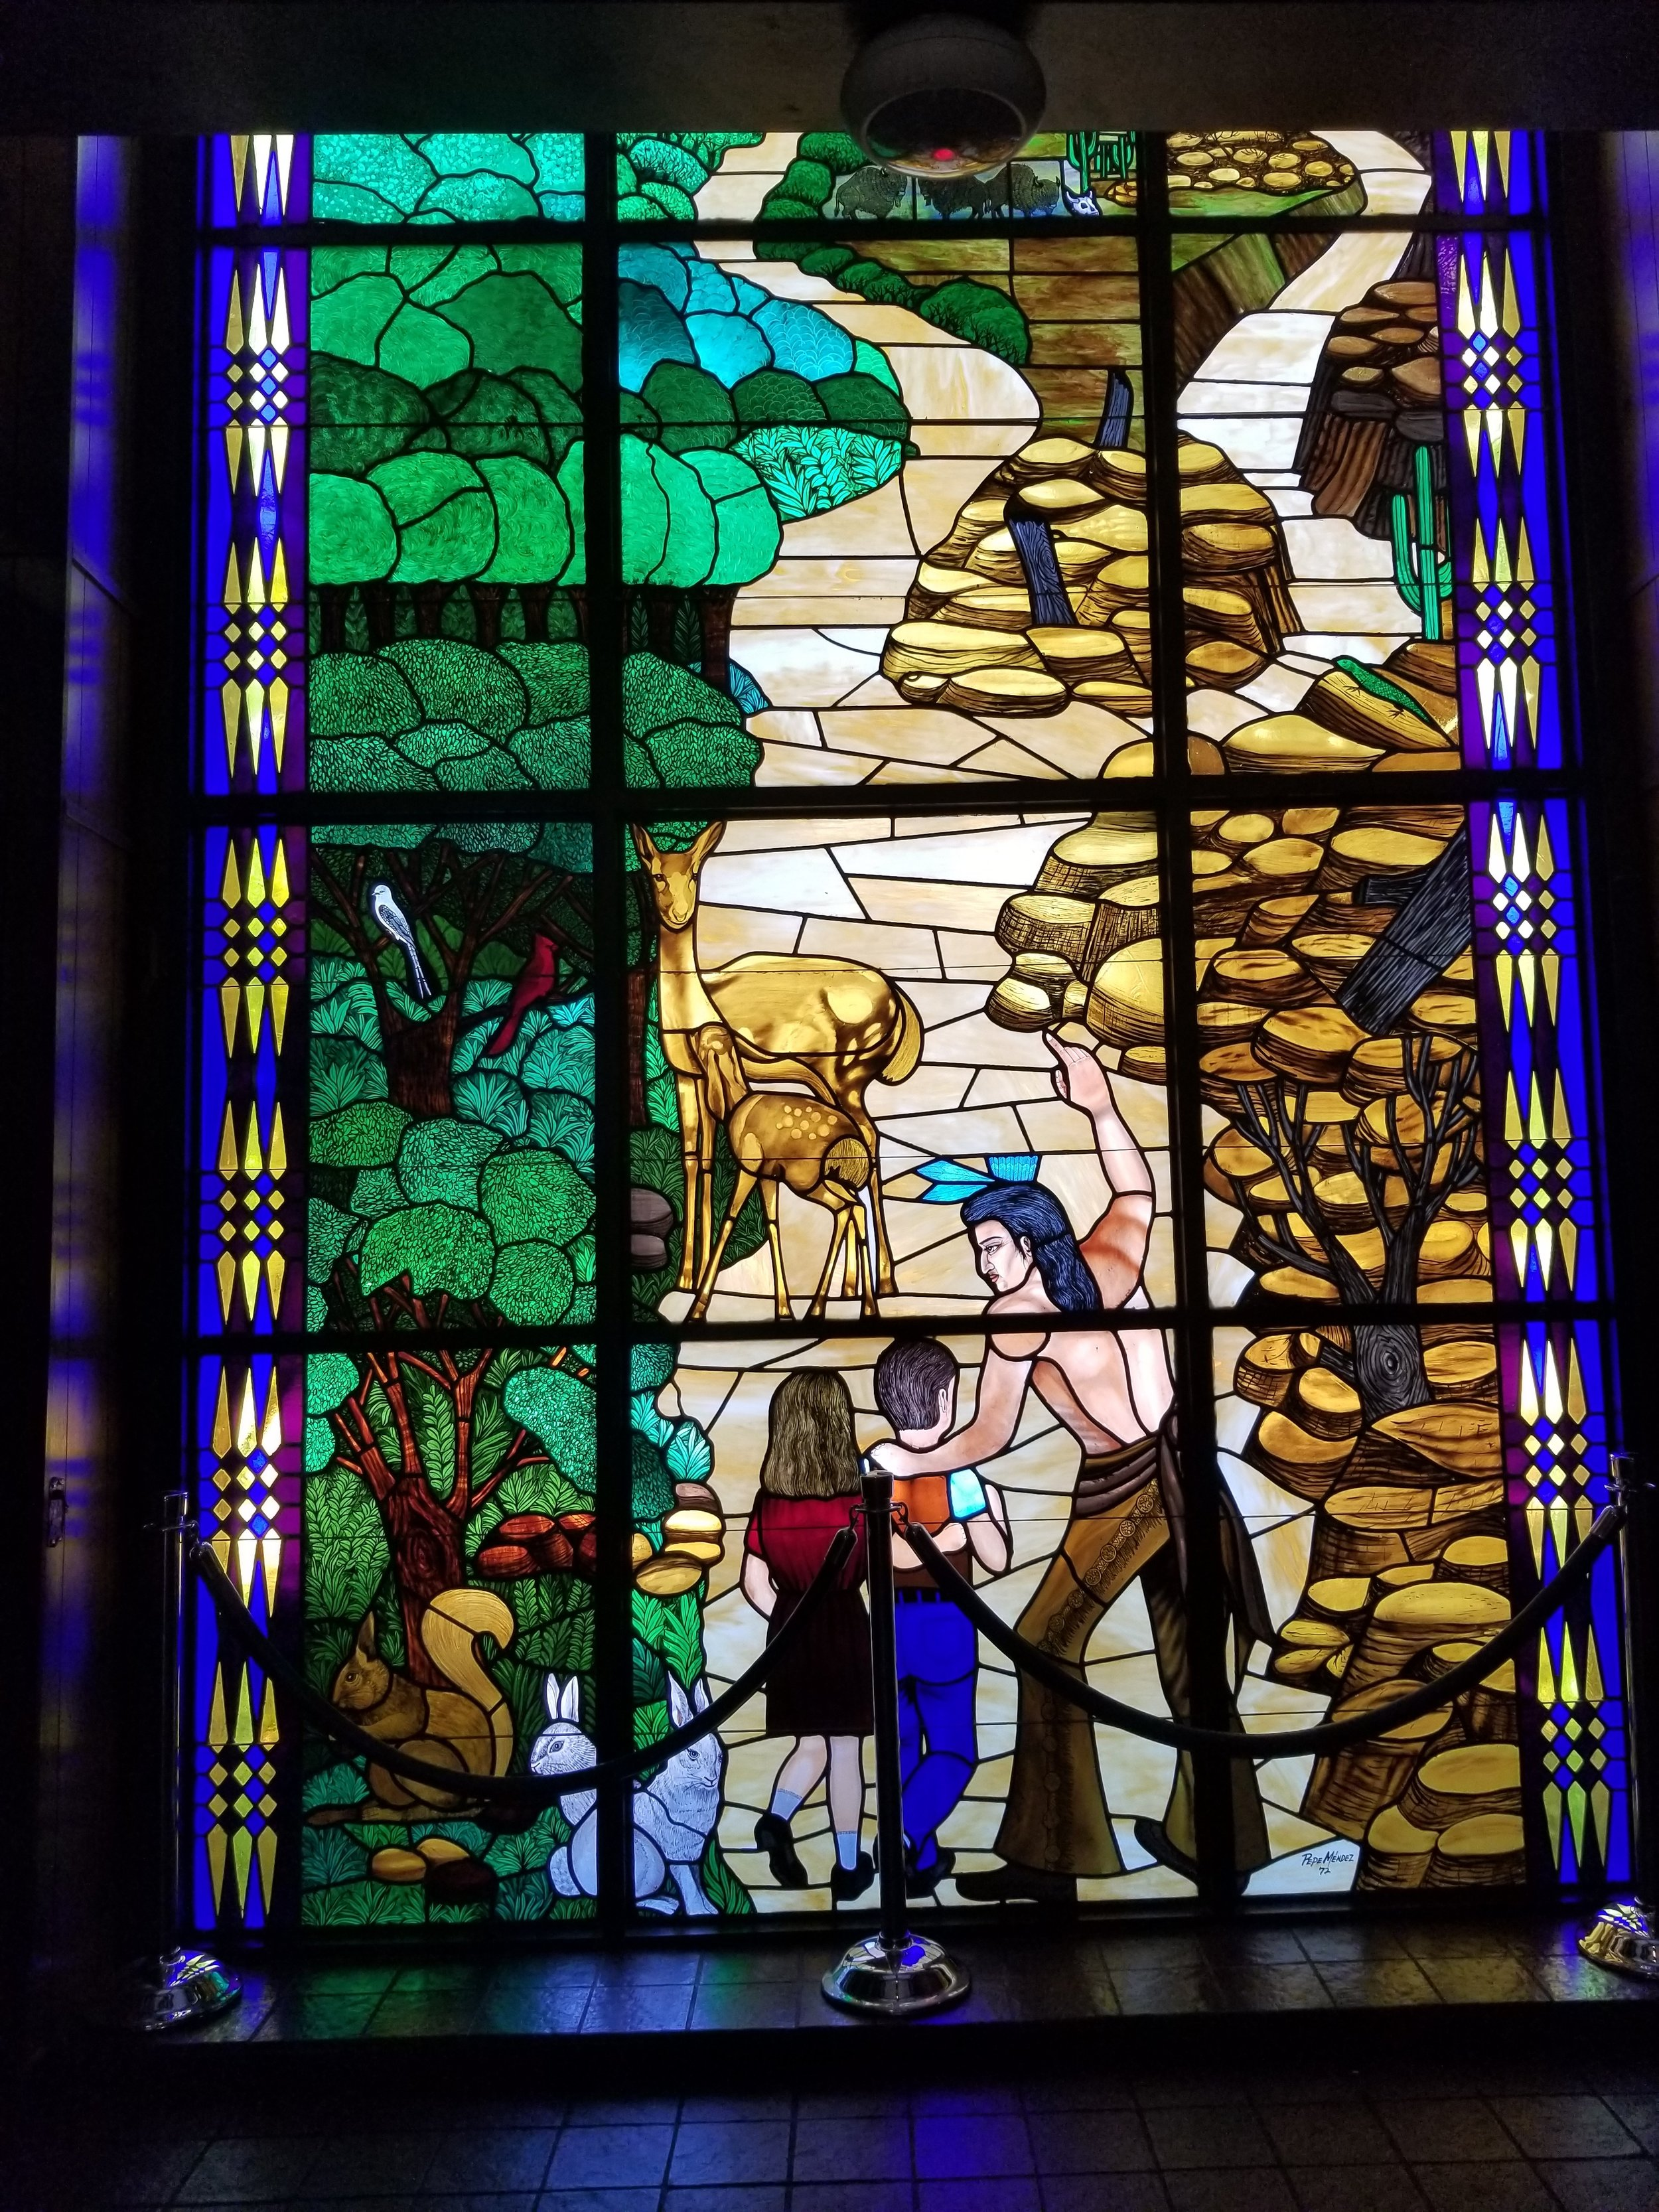 This beautiful stained glass was part of the Heritage Center. The Heritage Center had AC, restrooms, table and chairs and played movies about Woolaroc. It was the perfect spot to have our picnic lunch and get a break from the heat